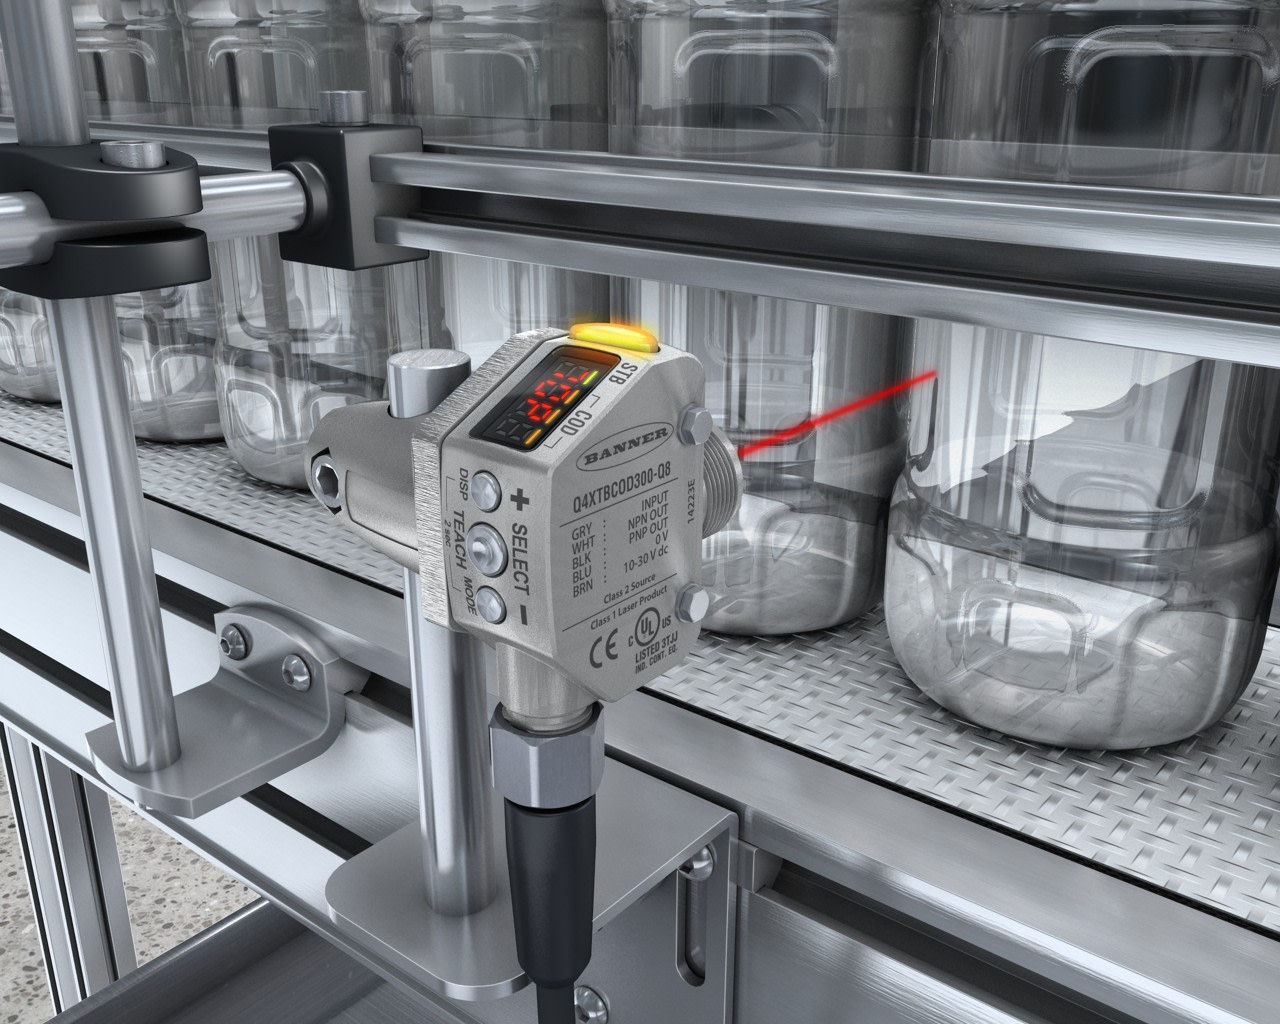 Detecting Clear Glass and Plastic PET Bottles in Washdown Environment